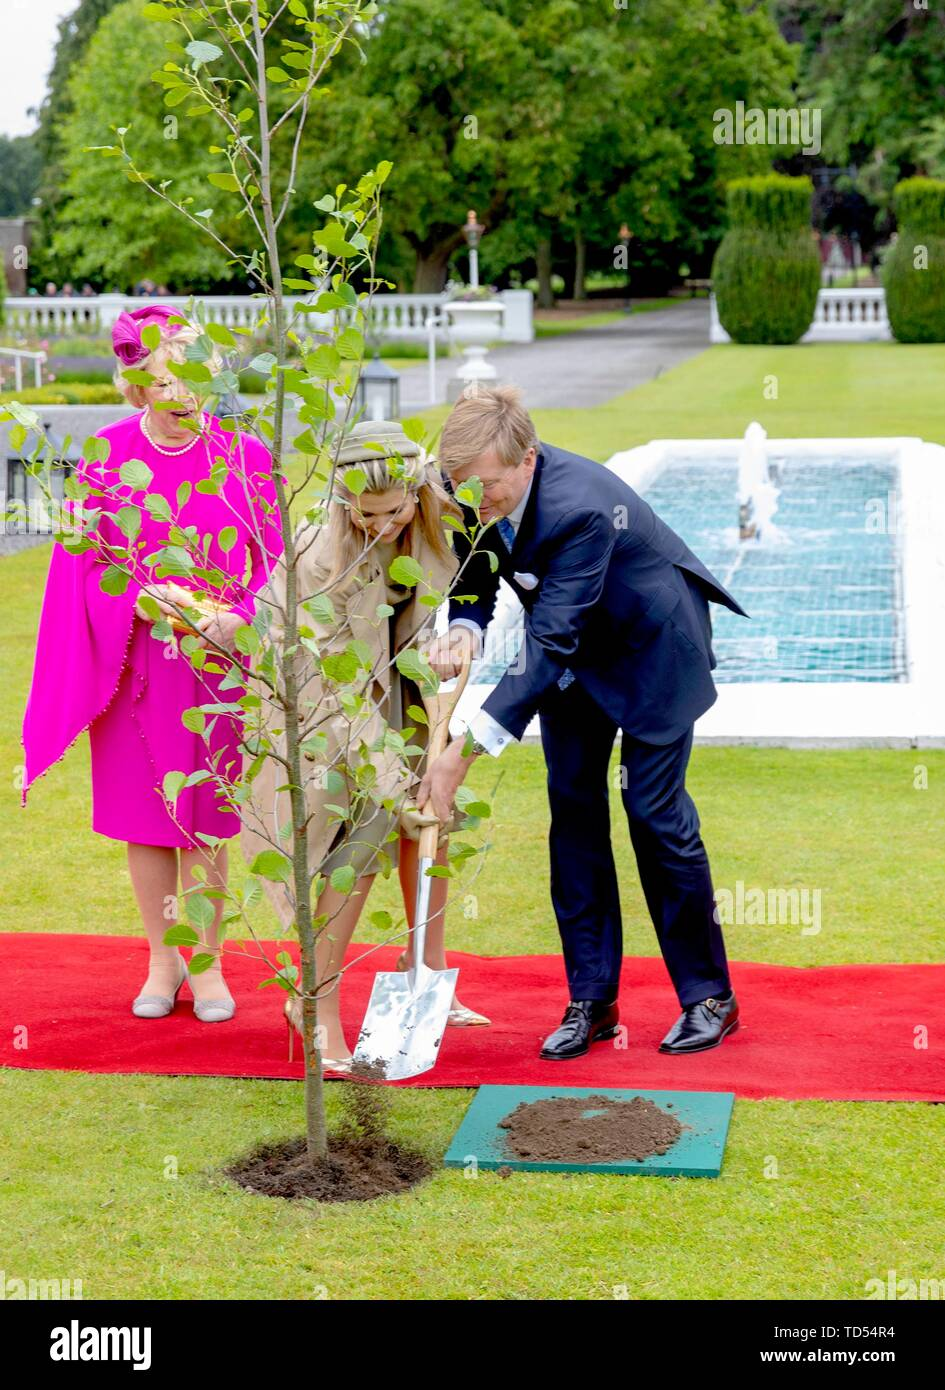 Dublin, Ireland. 12th June, 2019. King Willem-Alexander and Queen Maxima of The Netherlands received by President Higgins and his wife Sabina Higgins at A_ras an Uachtara_in, the Presidential Palace in Dublin, on June 12, 2019, planting a tree at the 1st of a 3 days State-visit to Ireland Photo : Albert Nieboer/ Netherlands OUT/Point de Vue OUT | Credit: dpa/Alamy Live News - Stock Image